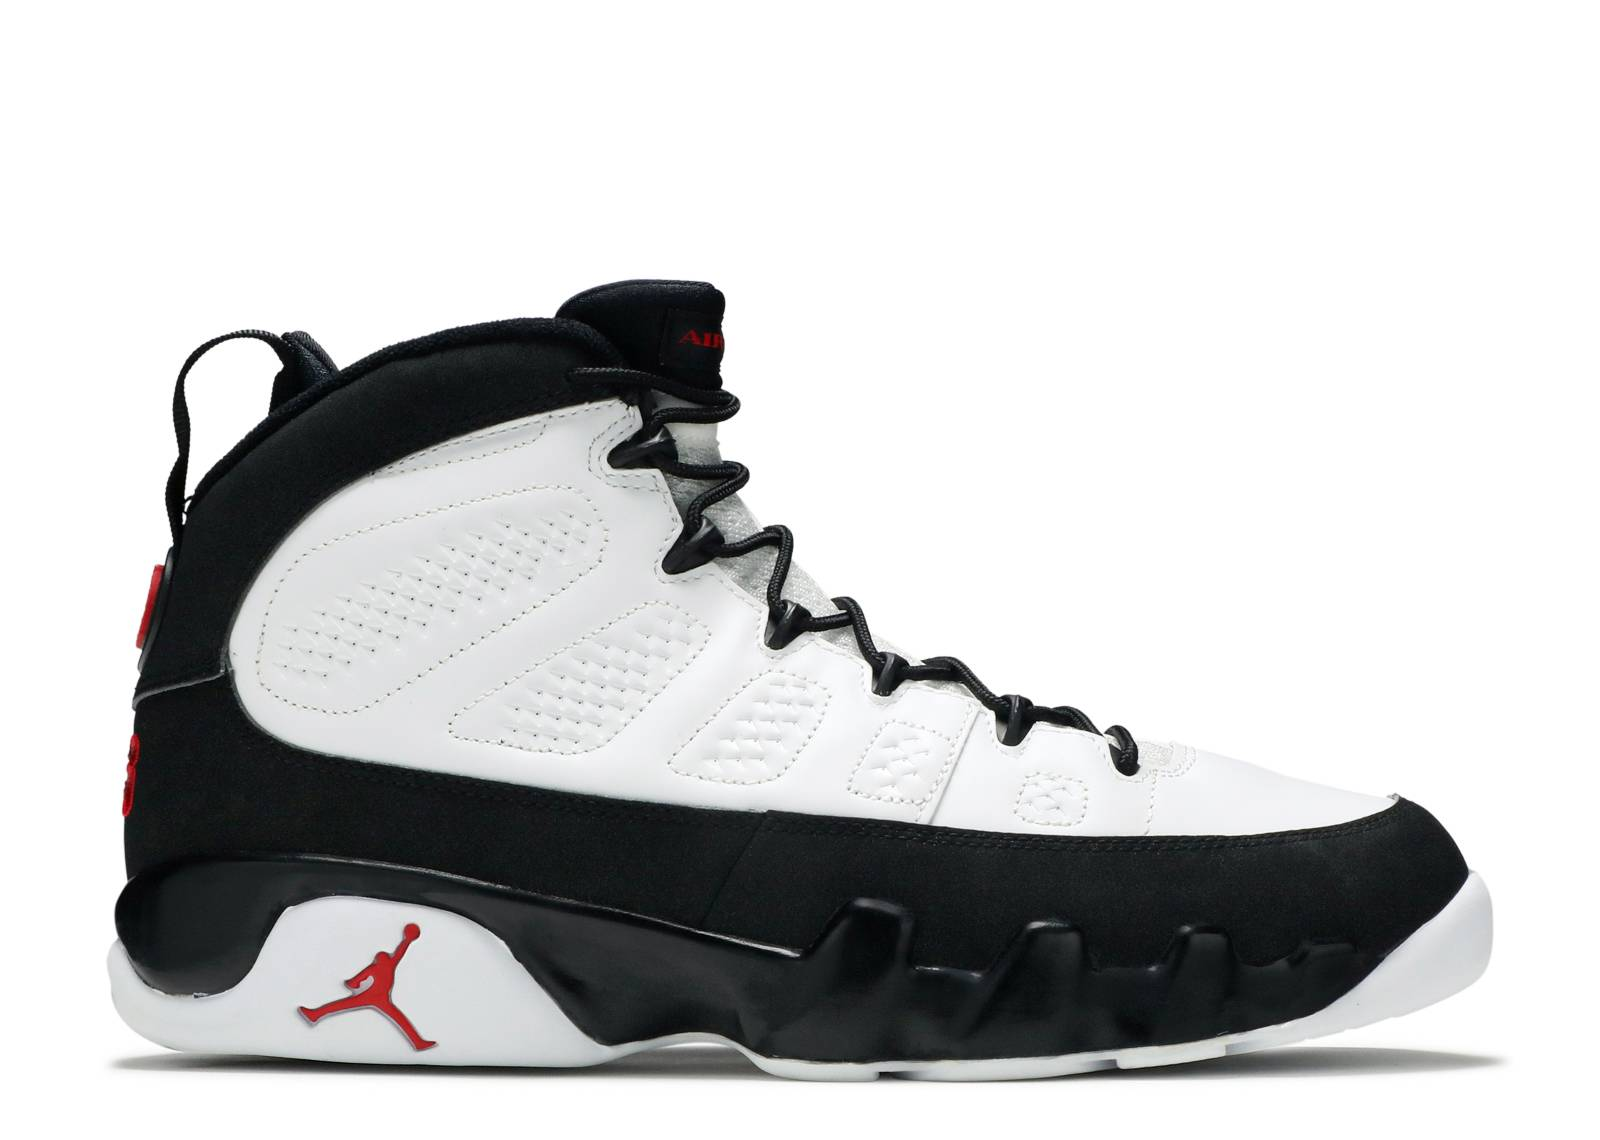 dba47e6419f80 Air Jordan 9 Retro